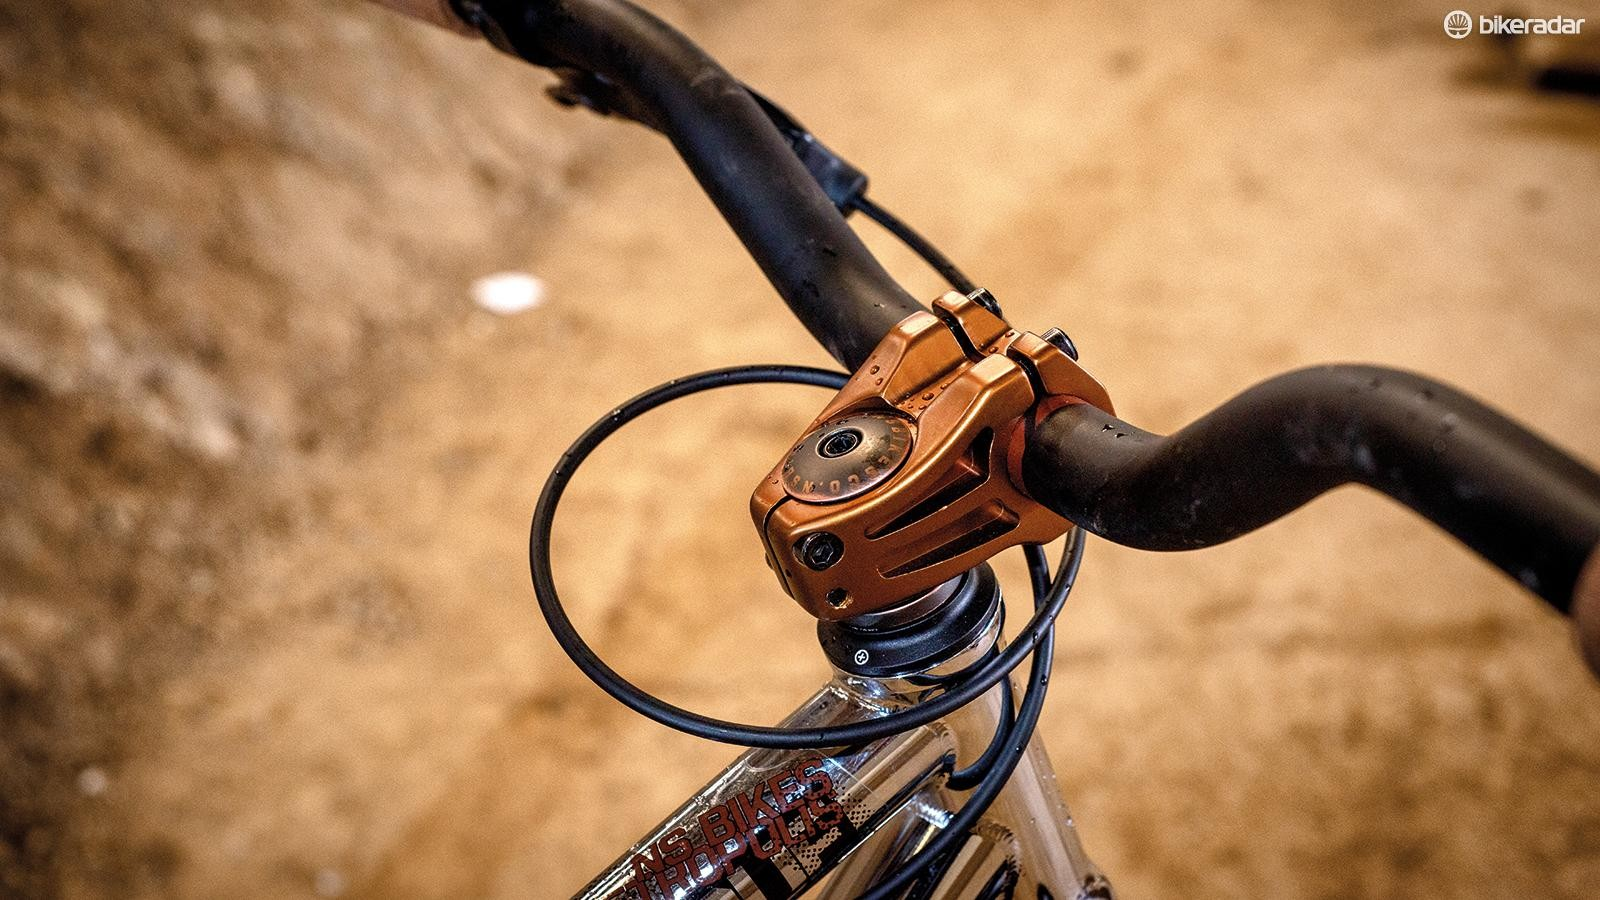 The fashionably high bar takes a while to get used to, coming from a trail bike